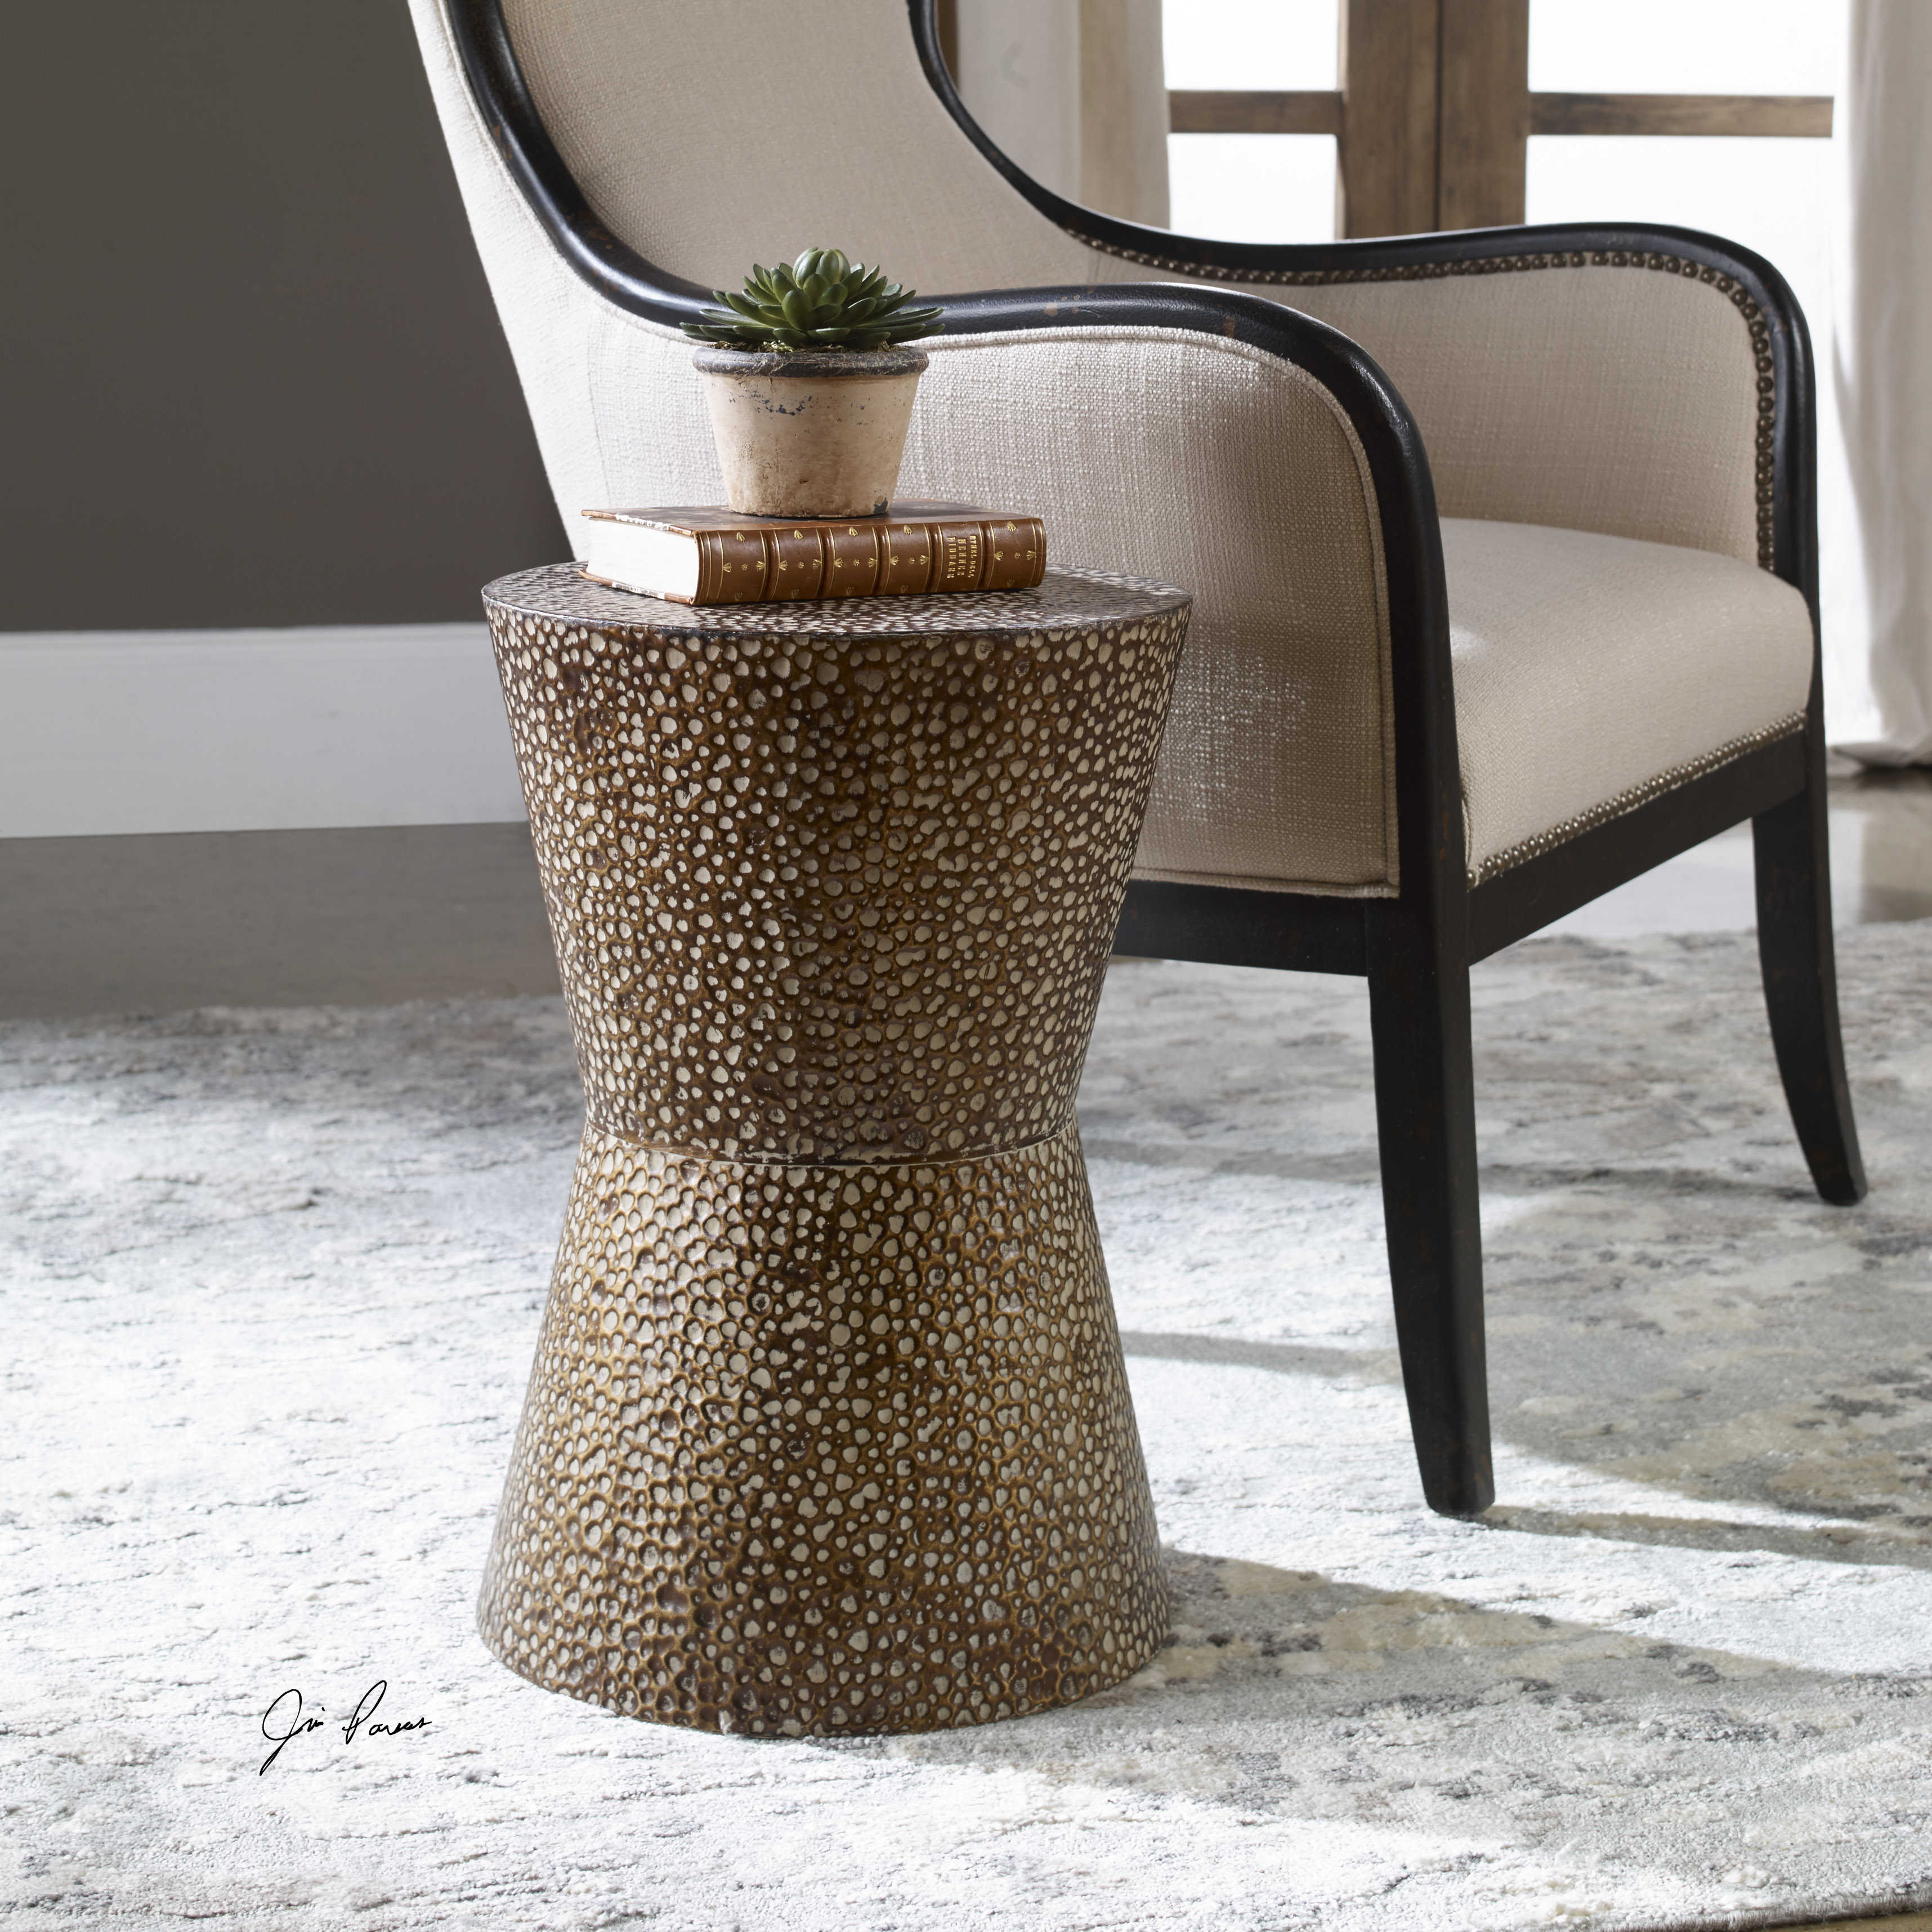 uttermost cutler drum shaped accent table better homes and gardens dishes nate berkus bath rug black gold decorations waterproof patio chair covers beach kitchen decor bar top